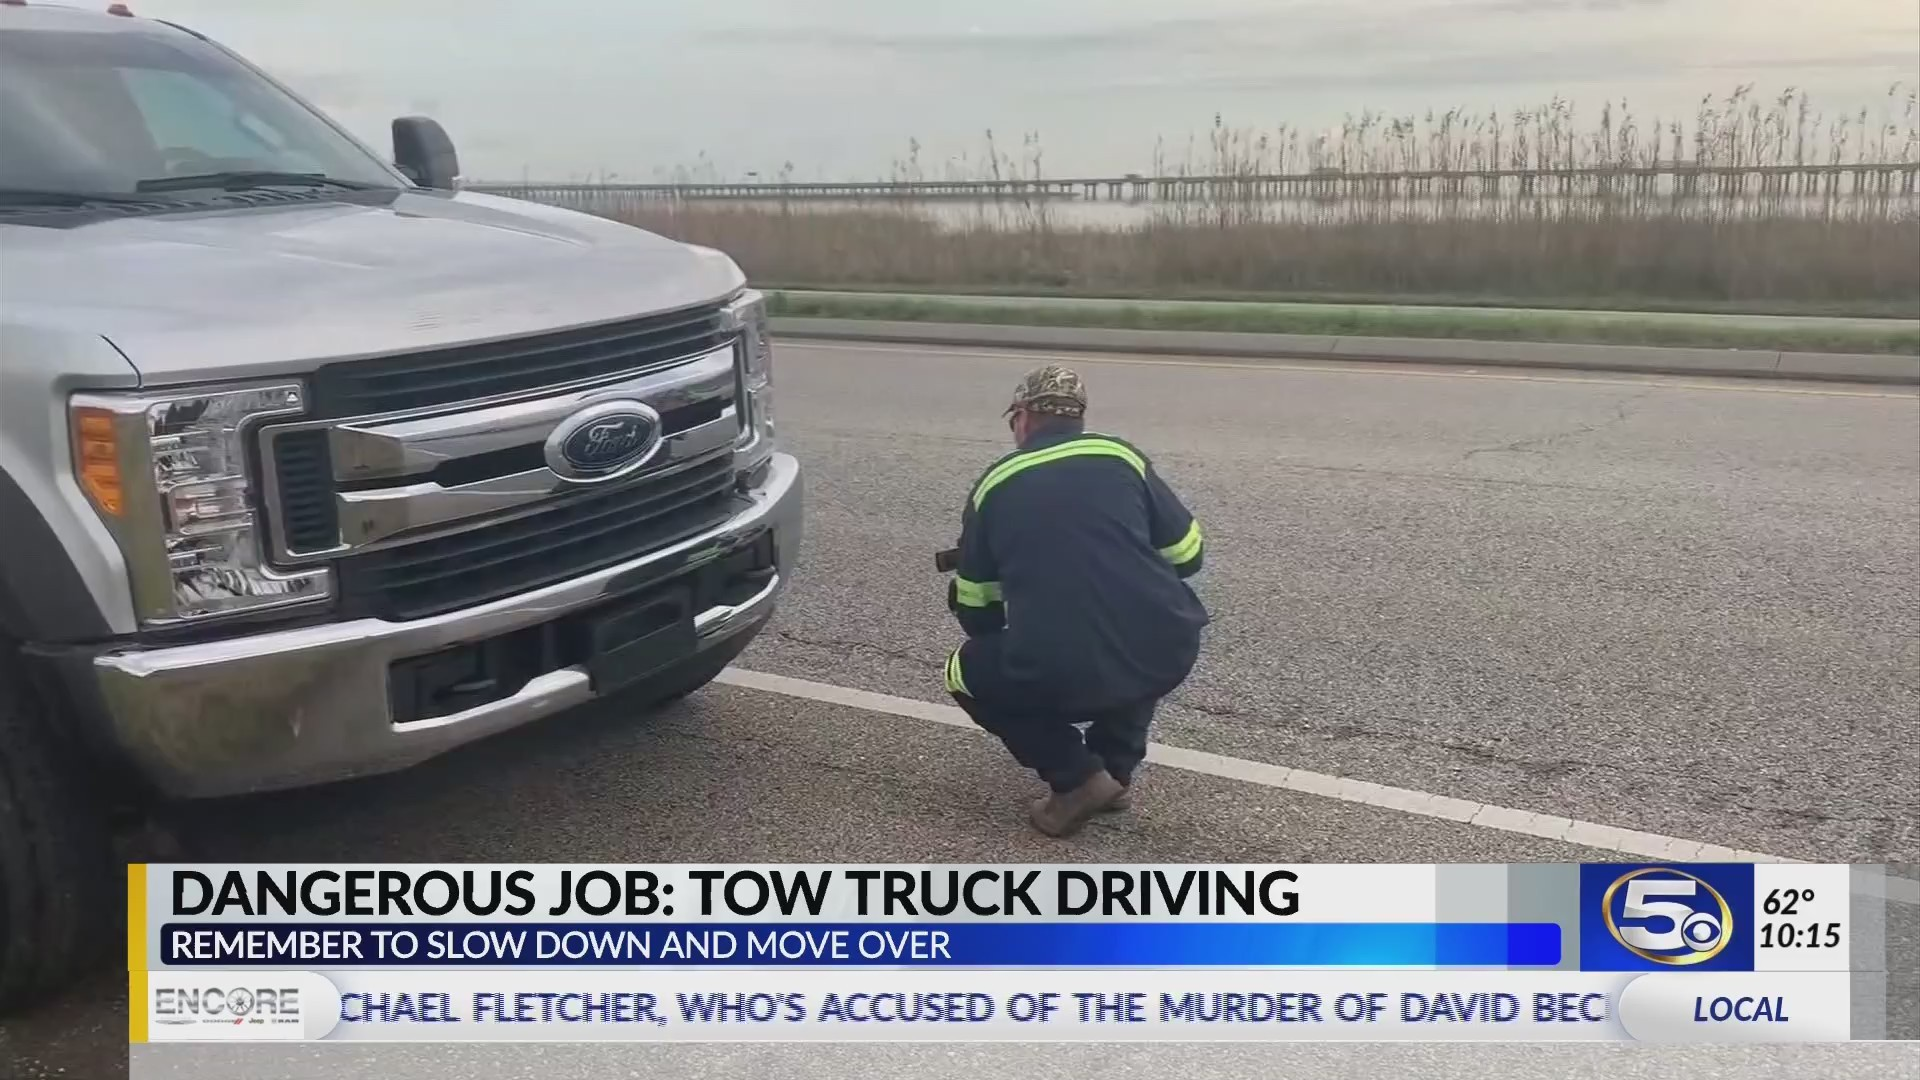 VIDEO: Taking a look at the daily dangers of tow truck drivers